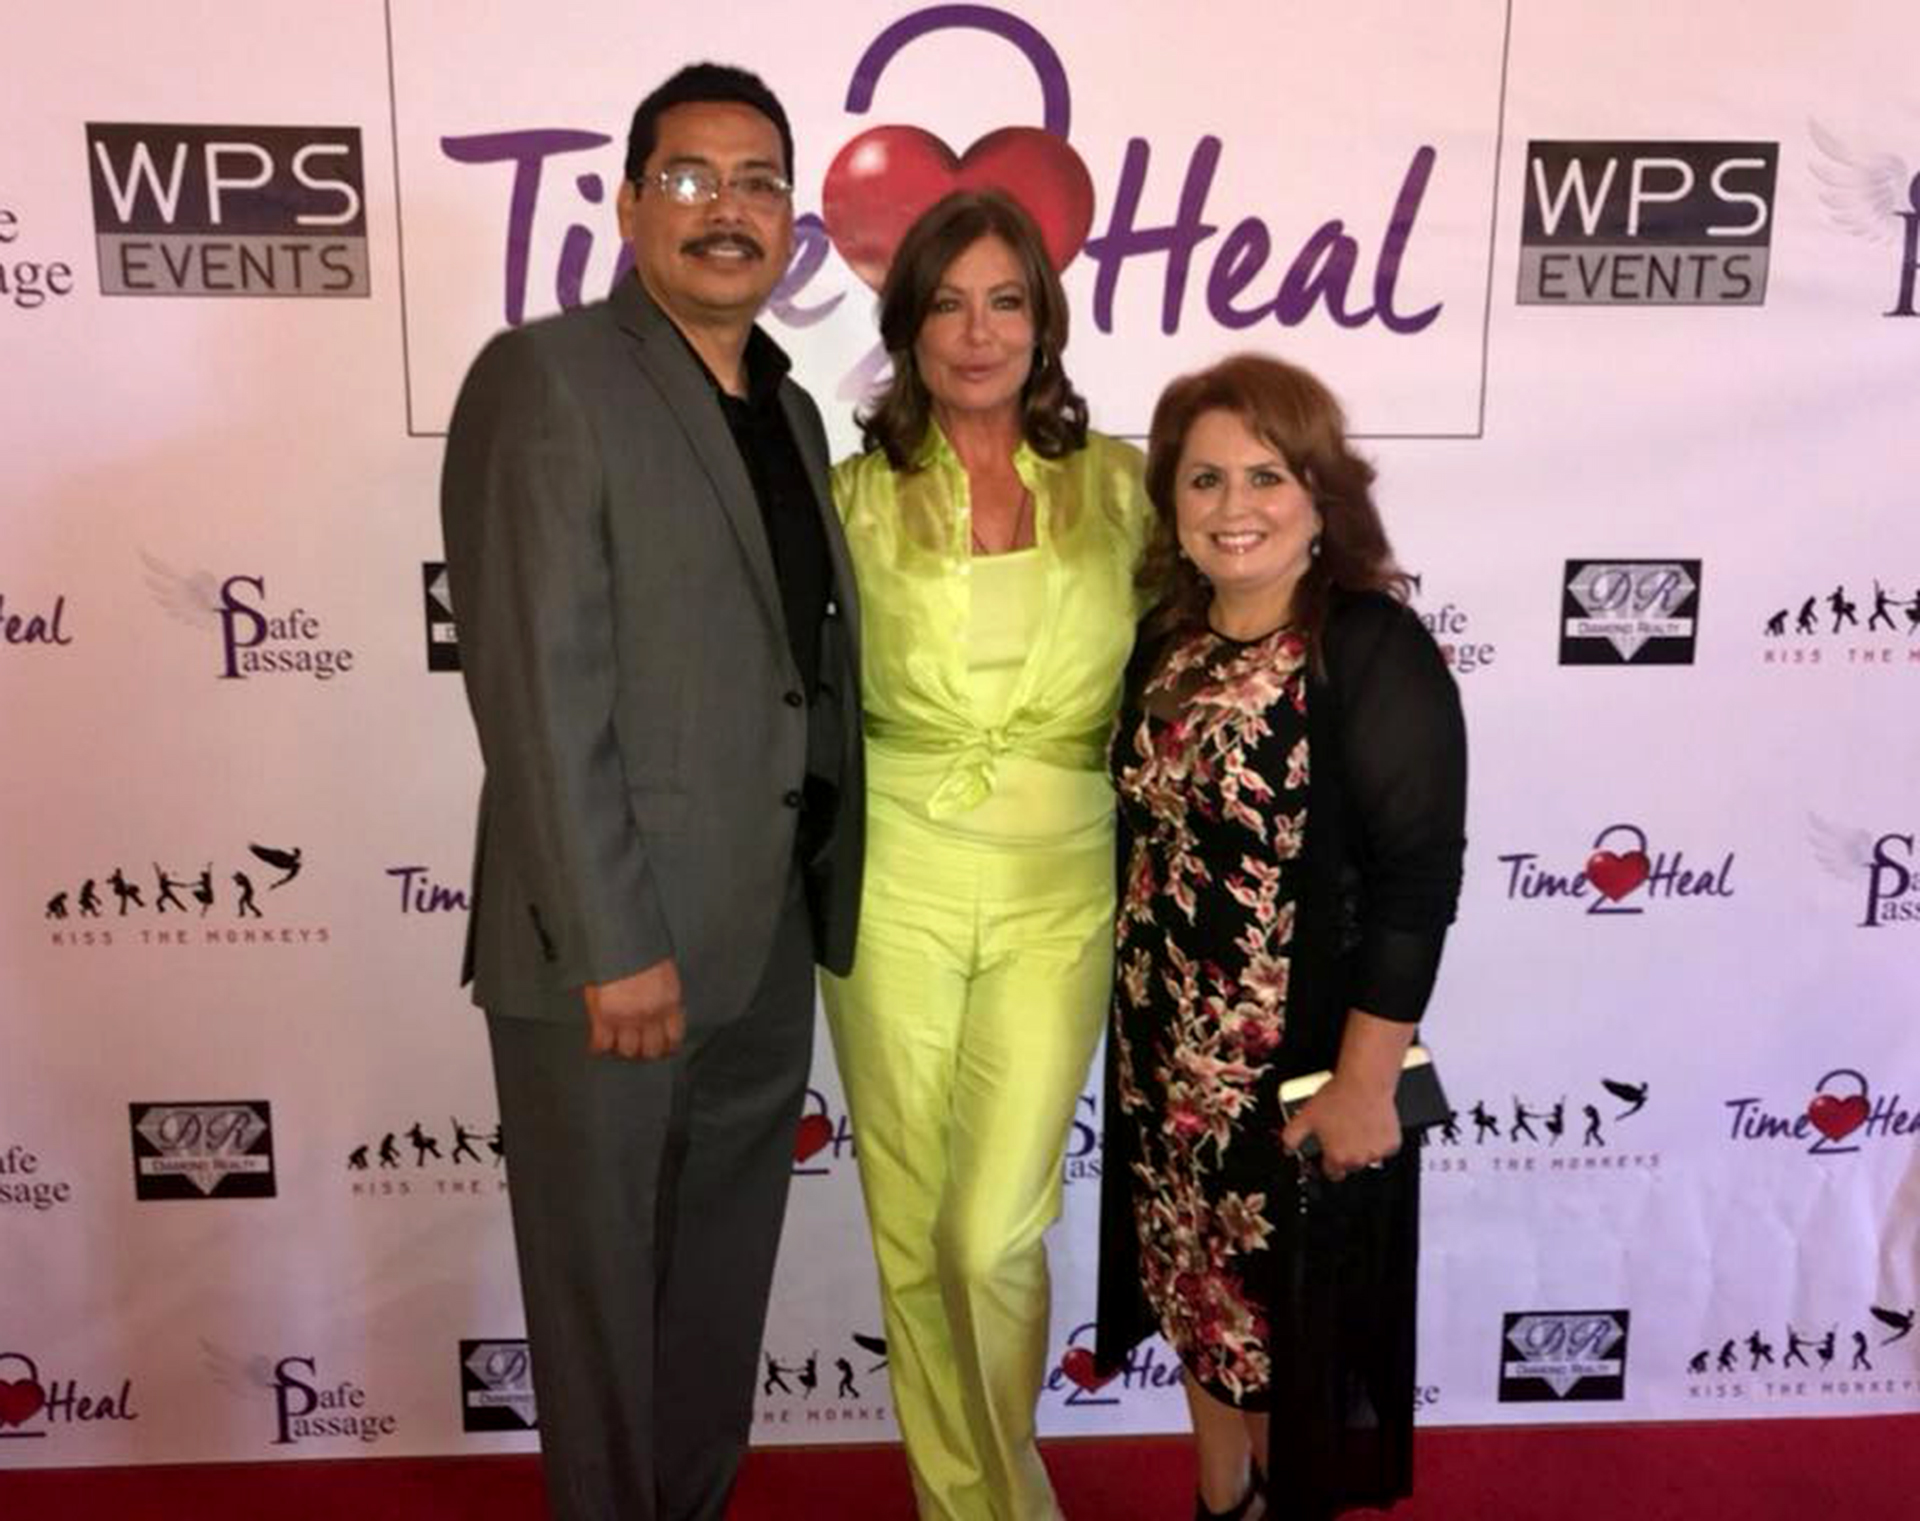 (l-r) Diamond Realty Owner Henry Robledo, Supermodel, Actress & Advocate Kelly LeBrock, and Diamond Realty Owner Theresa Robledo.